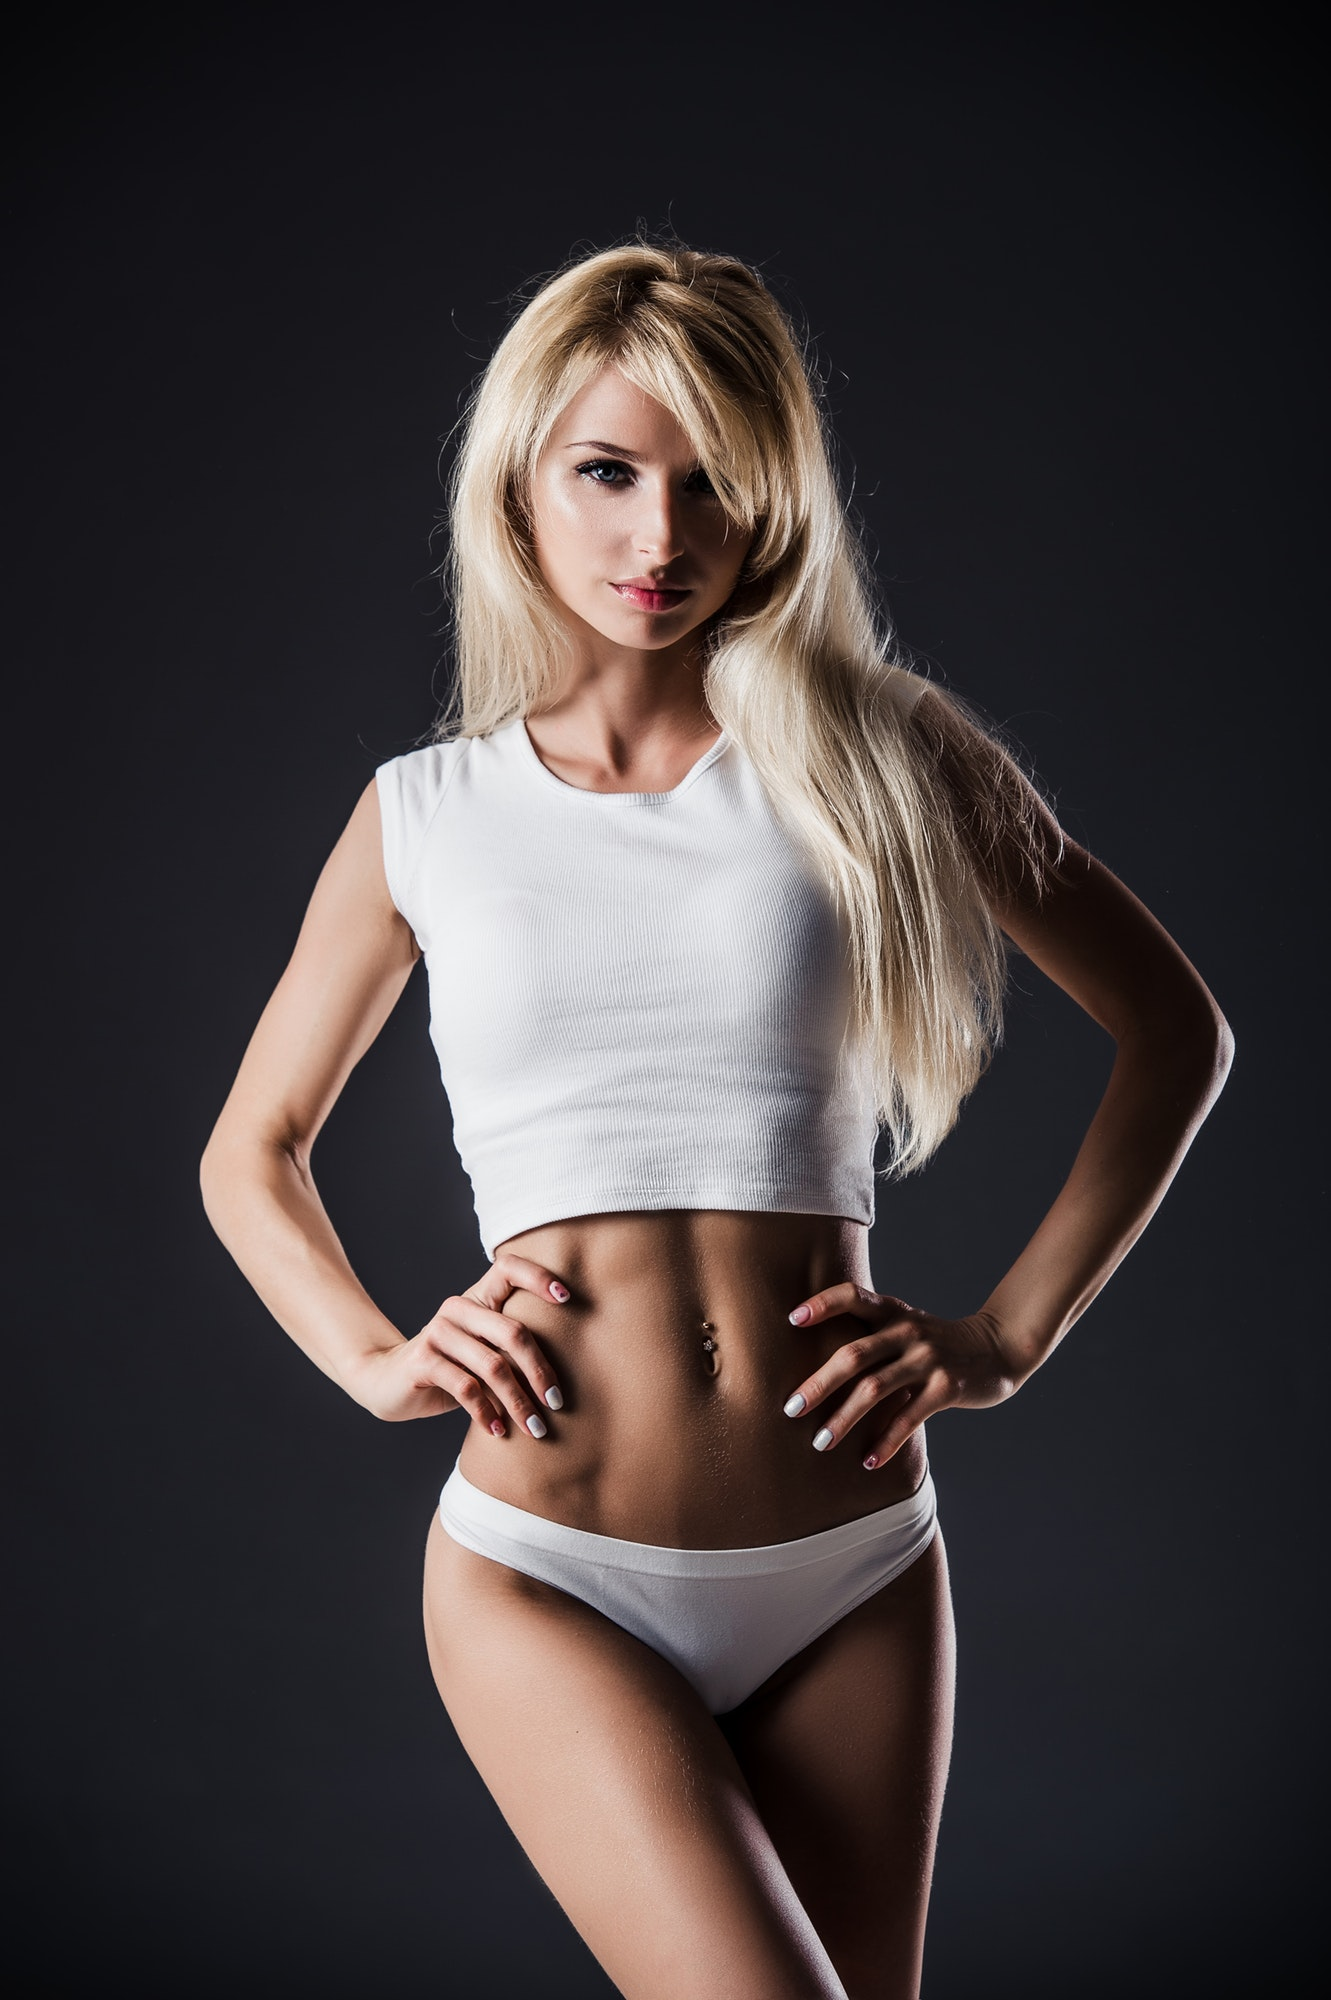 fitness-blonde-woman-shows-her-body-fitness-motivation-perfect-female-sports-figure-fitness-woman.jpg